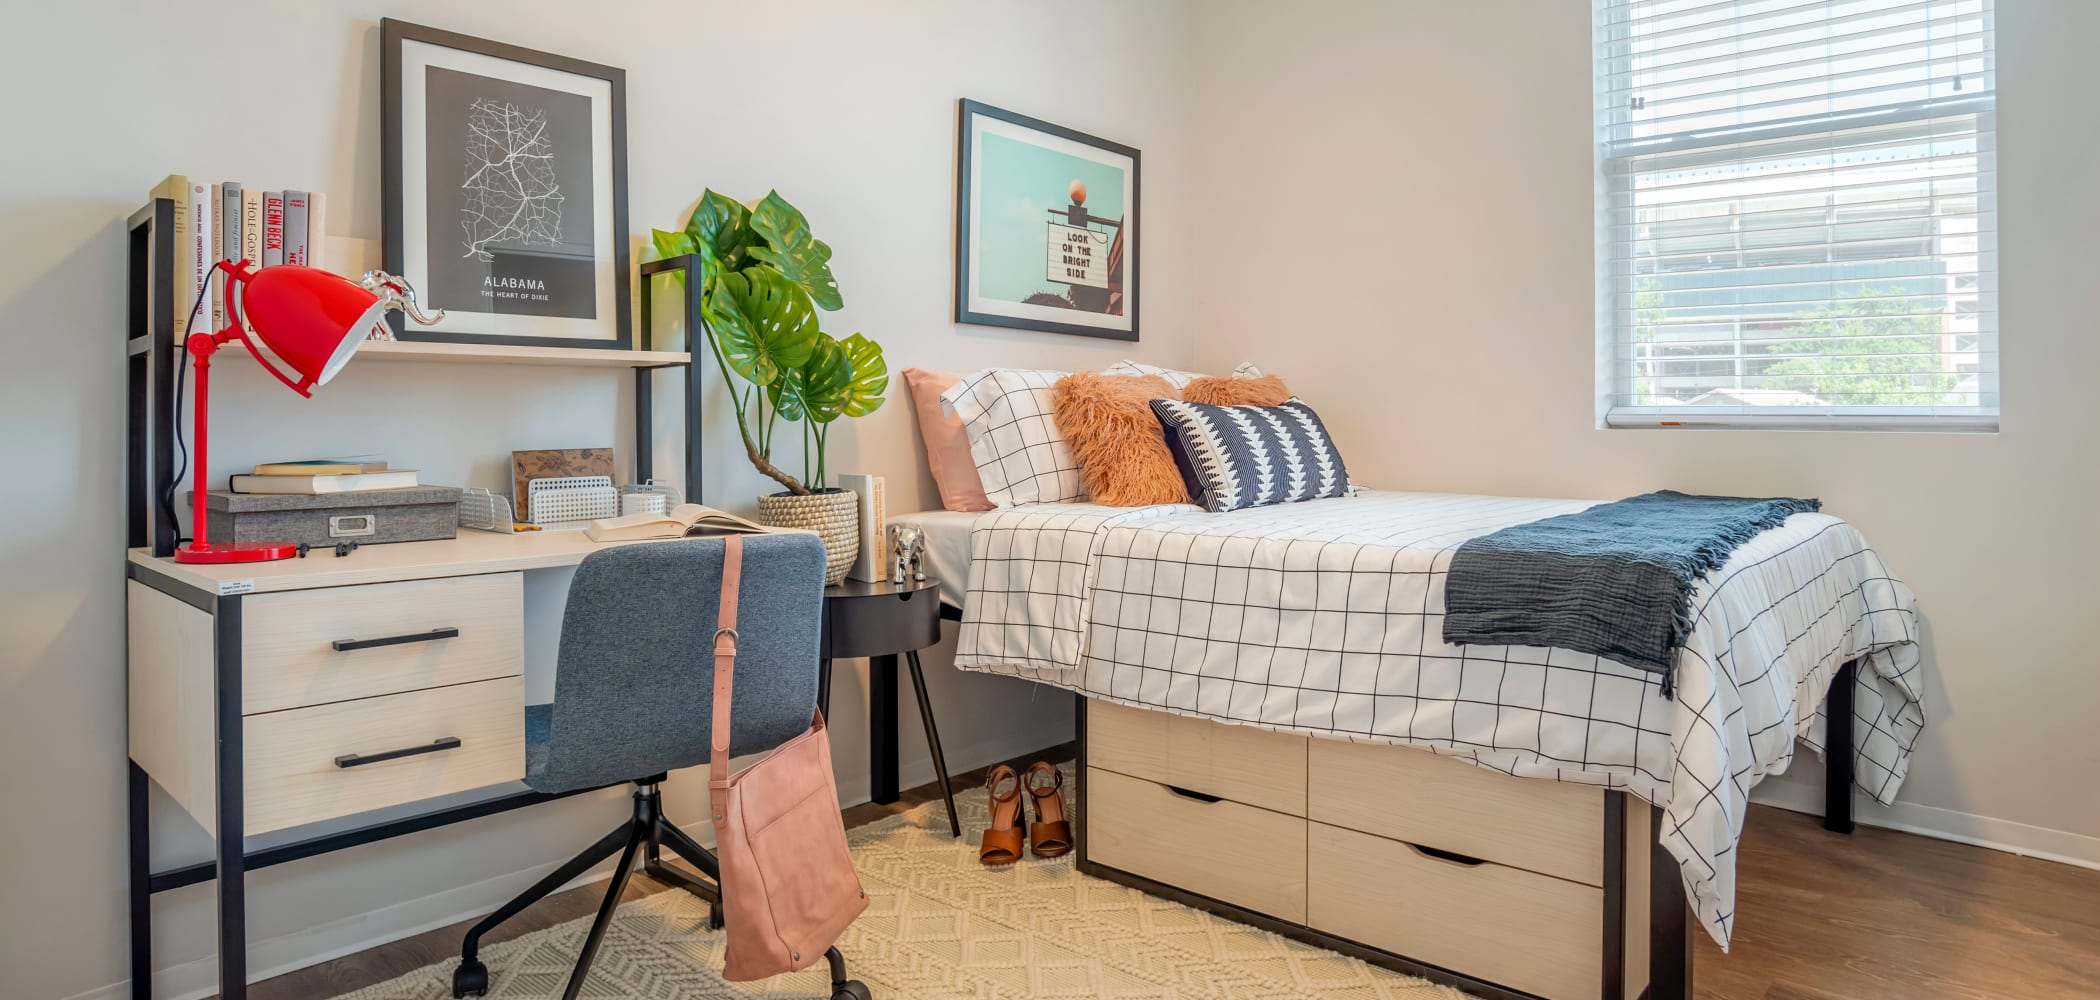 Bright bedroom with a view at UNCOMMON Tuscaloosa in Tuscaloosa, Alabama